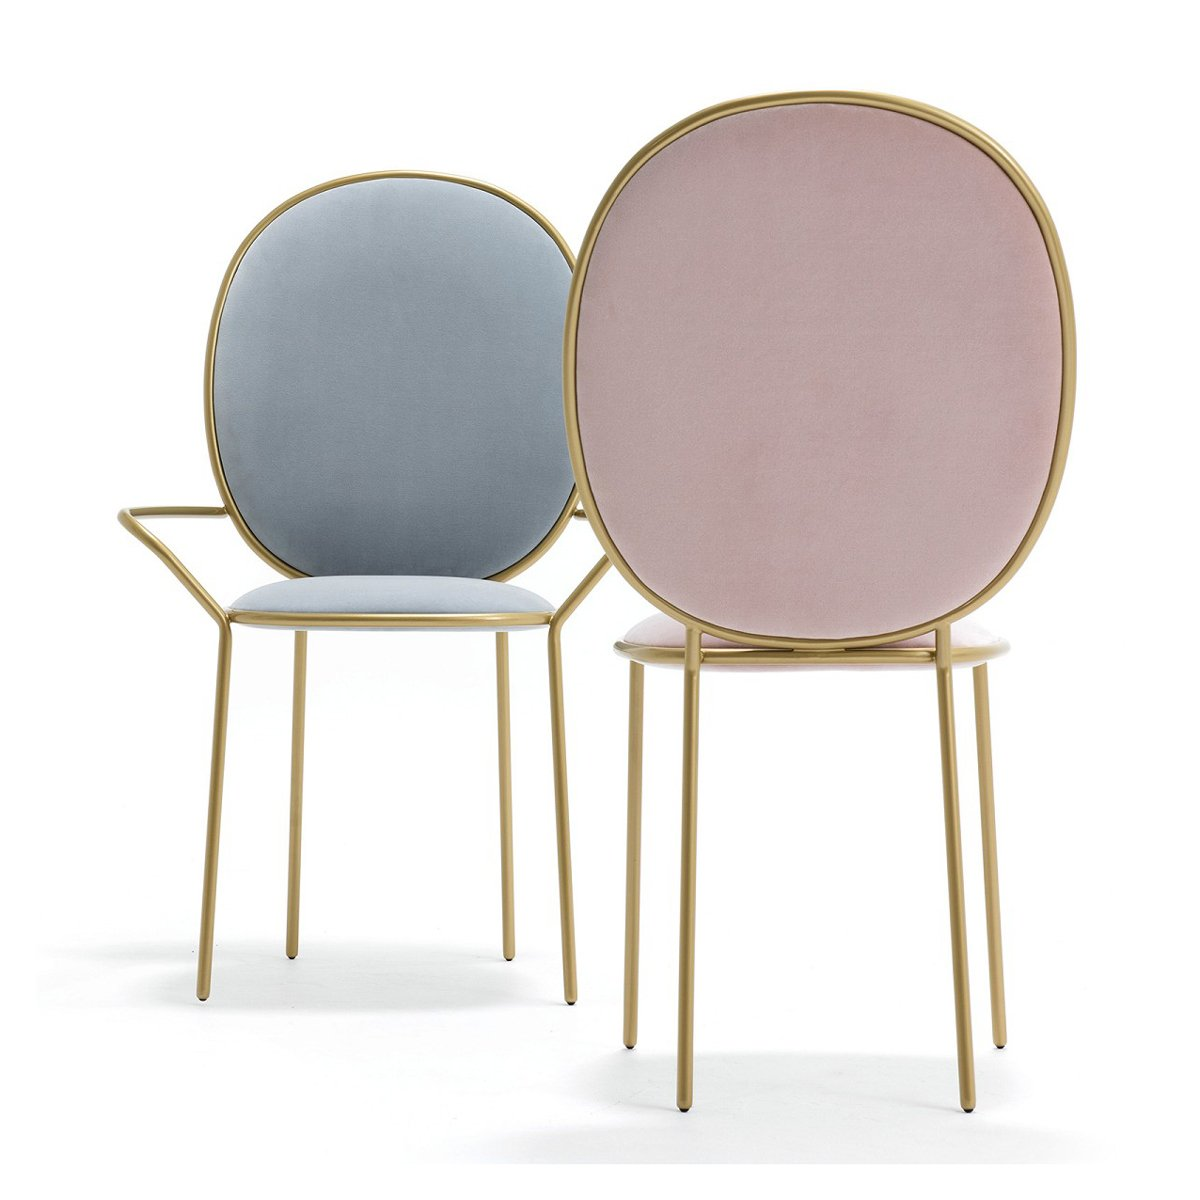 Replica Stay dining chair and armchair - blue and blush